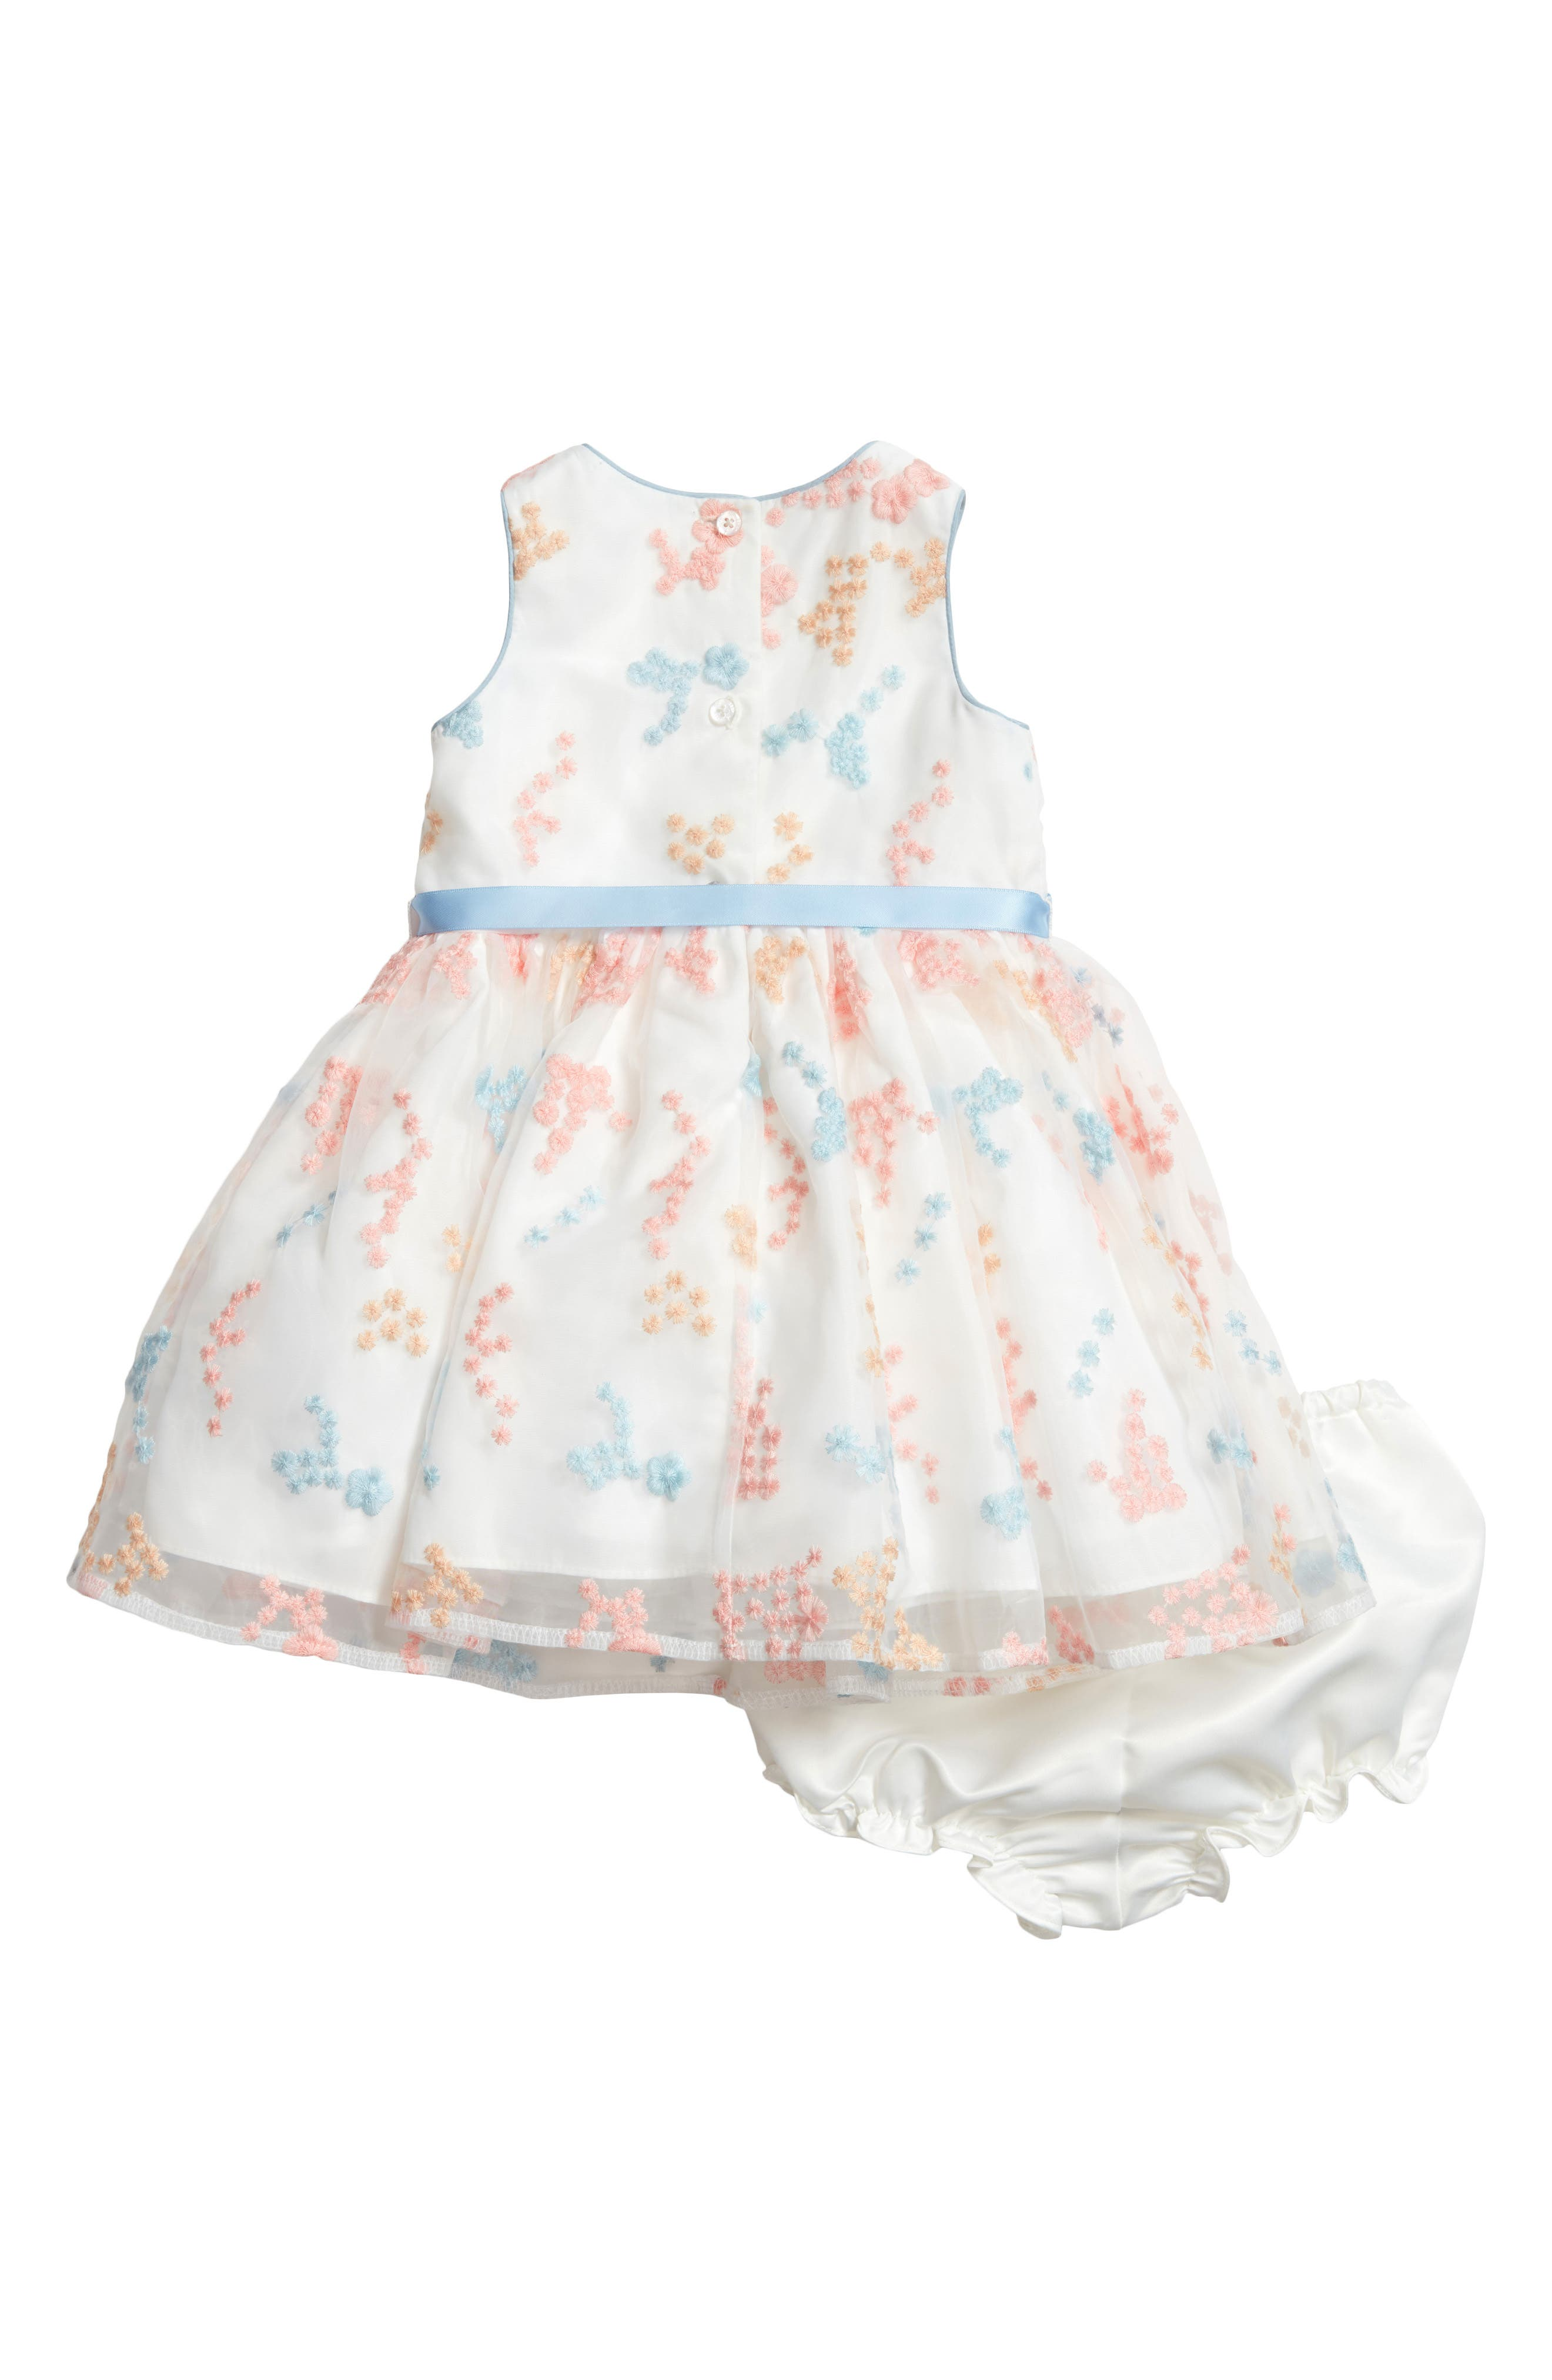 Embroidered Flower Dress,                             Alternate thumbnail 2, color,                             900